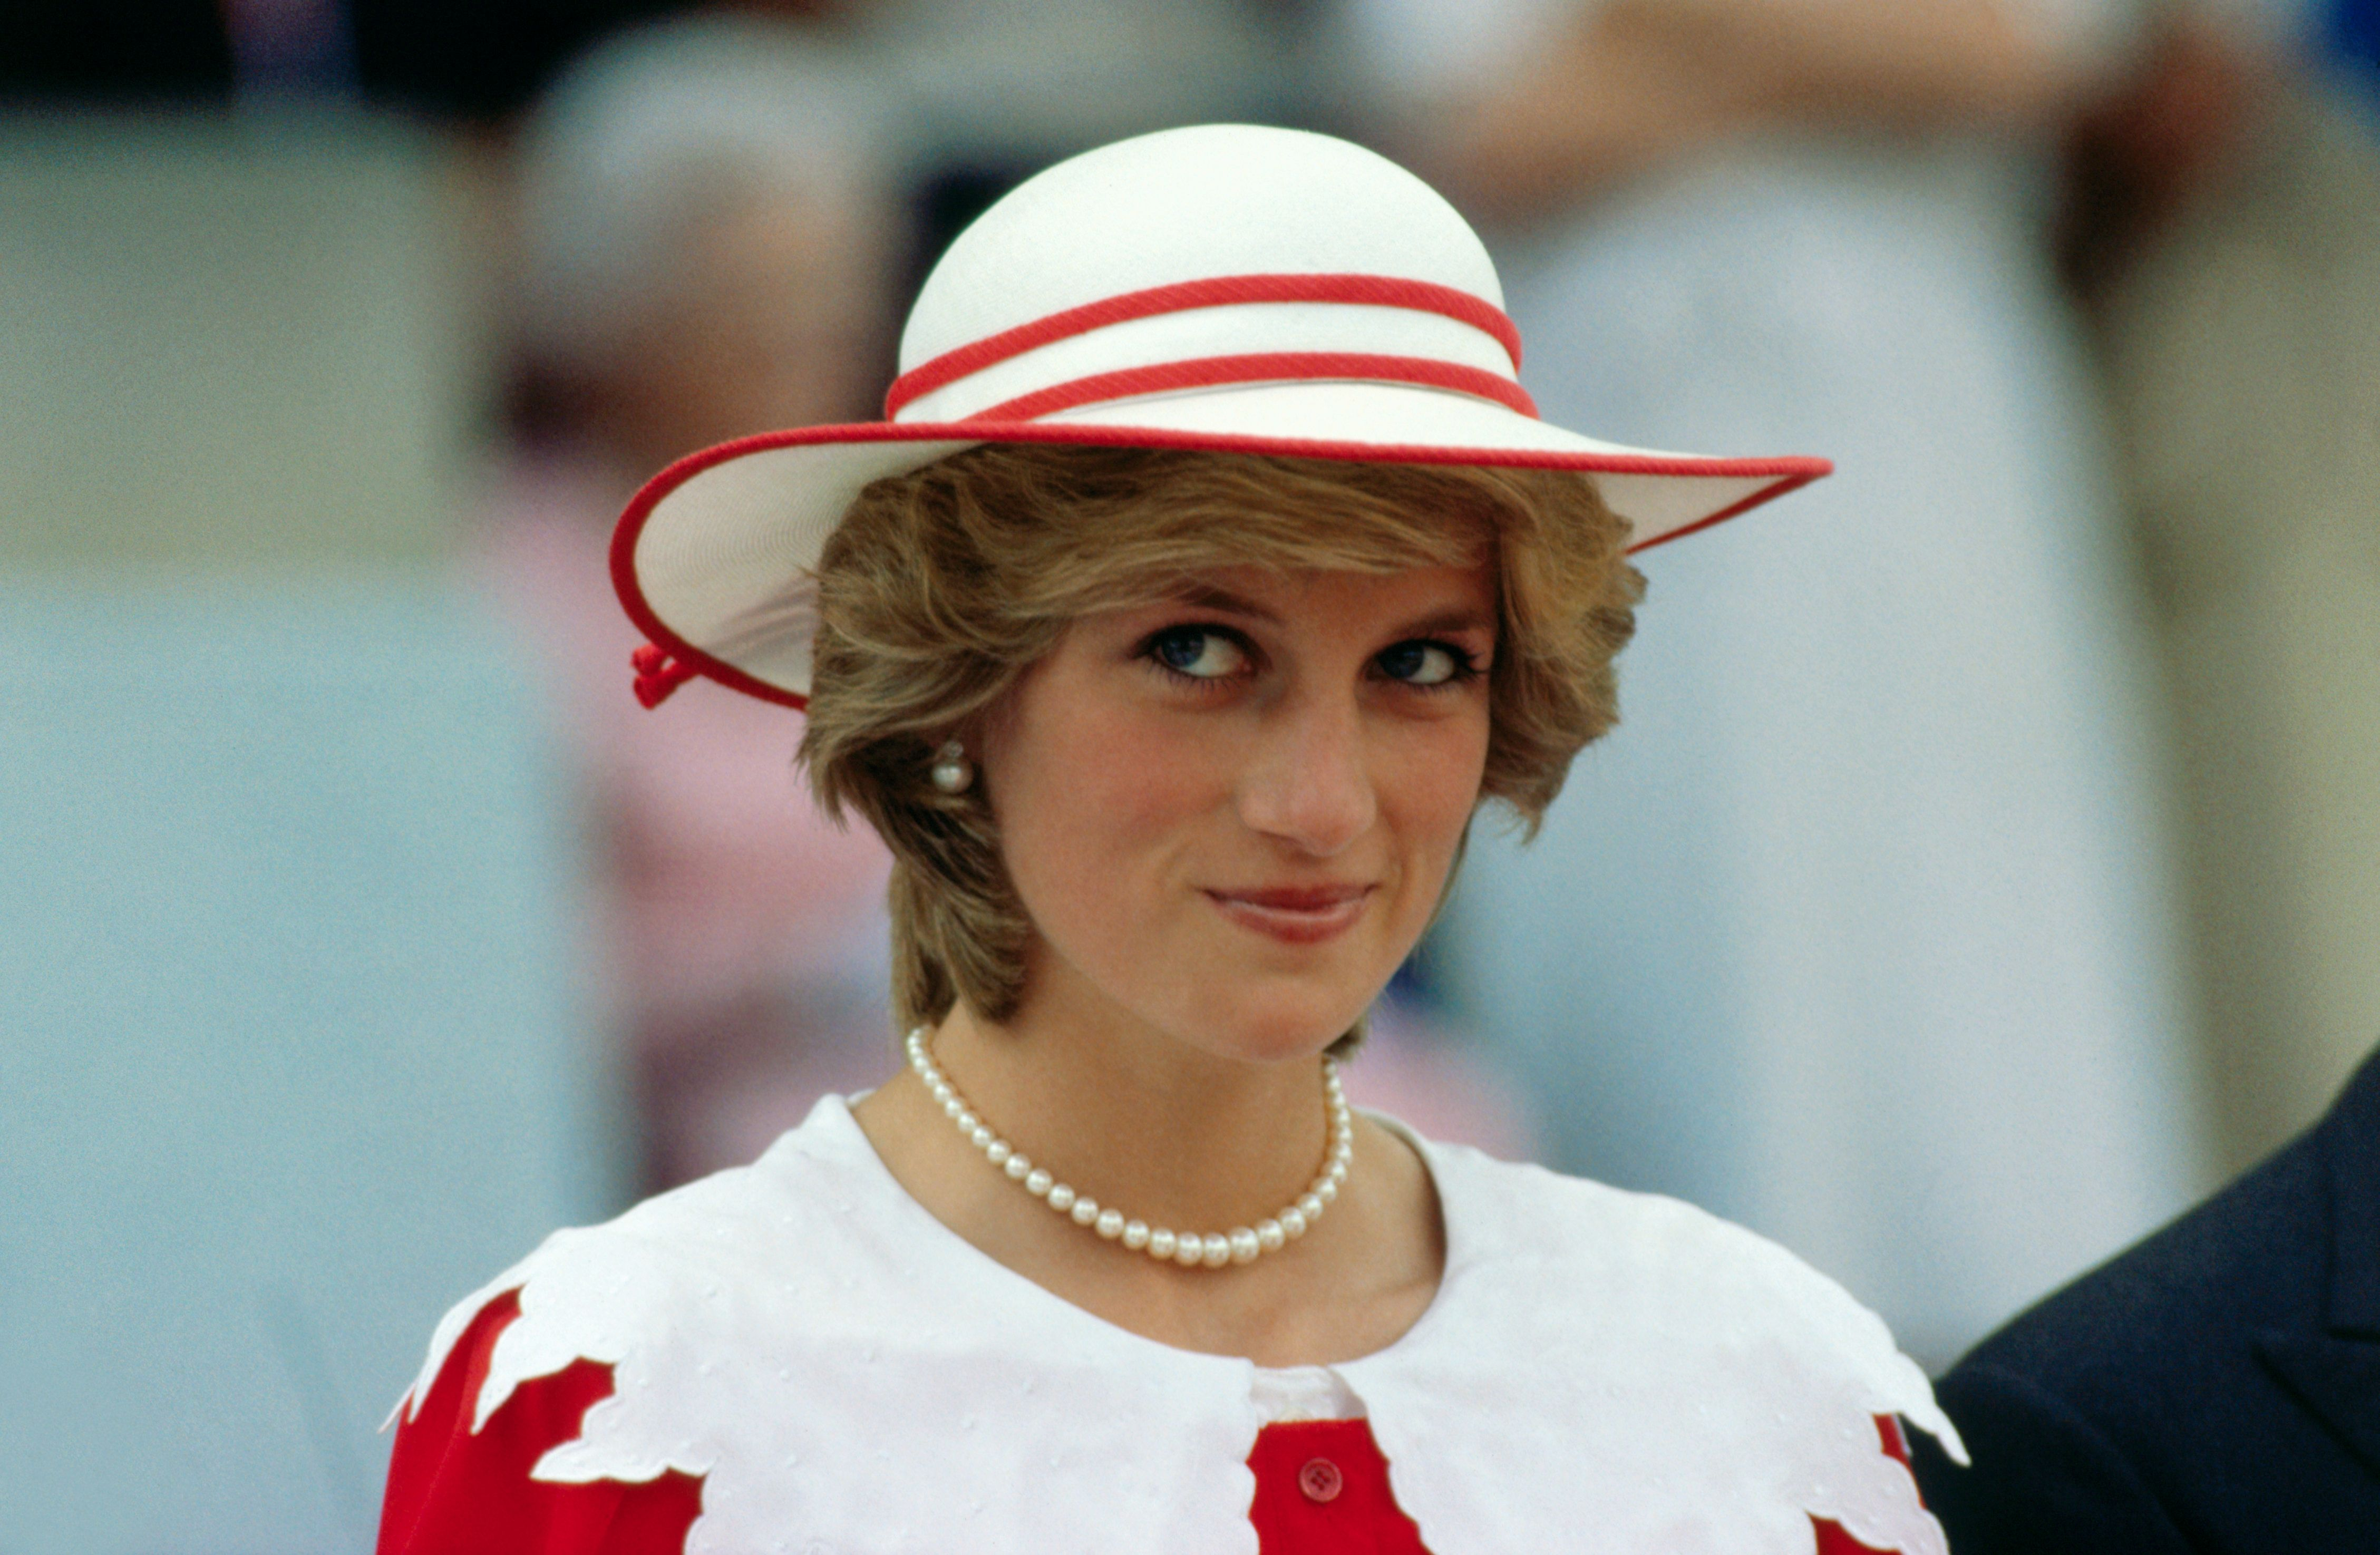 Princess Diana was known for an especially thoughtful habit. A recent study shows why you should adopt...